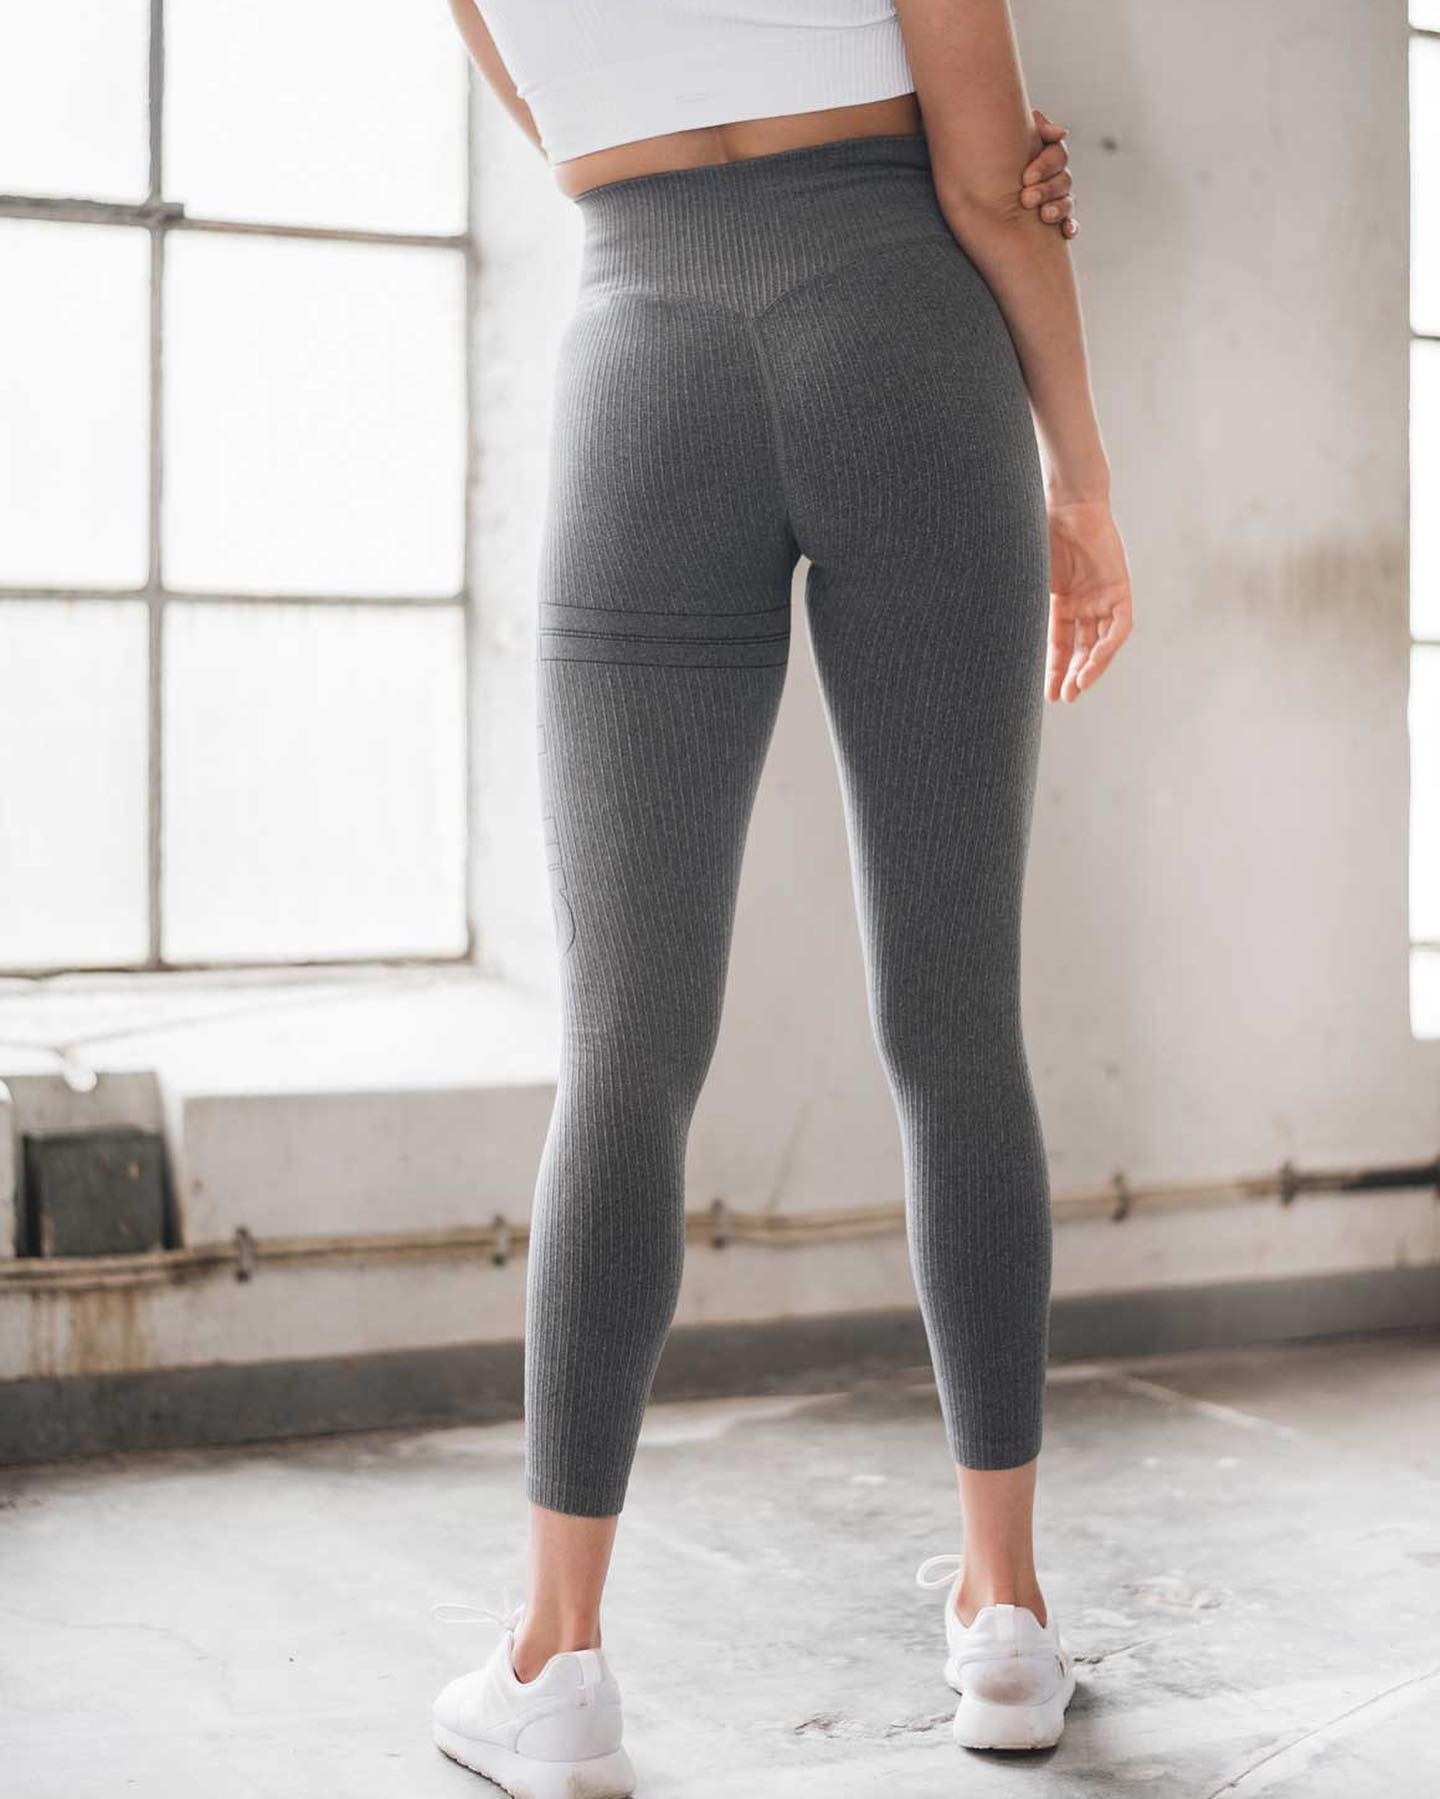 218fa60cf085b8 BACK IN STOCK 😍🙌 The Grey Ribbed Seamless Tights sold out so fast last  time